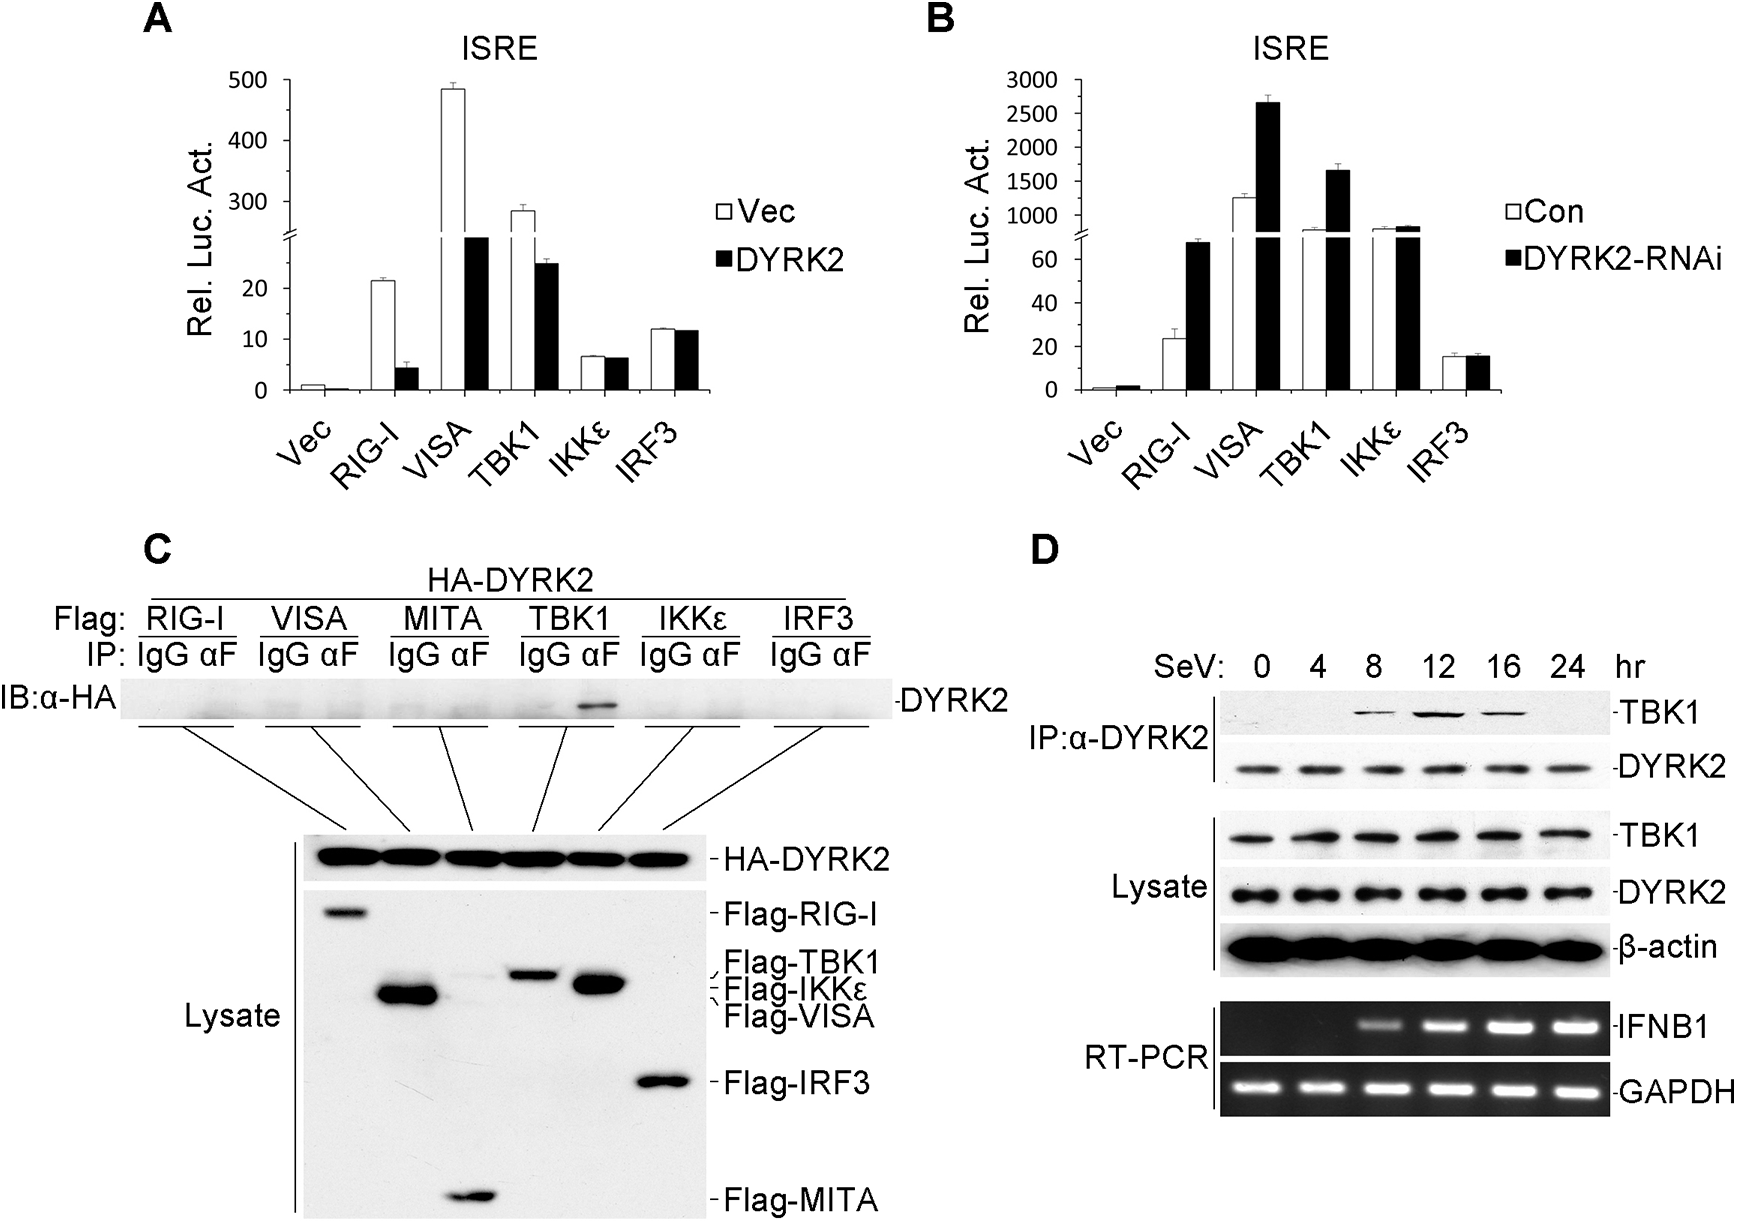 DYRK2-mediated virus-triggered signaling at the level of TBK1.